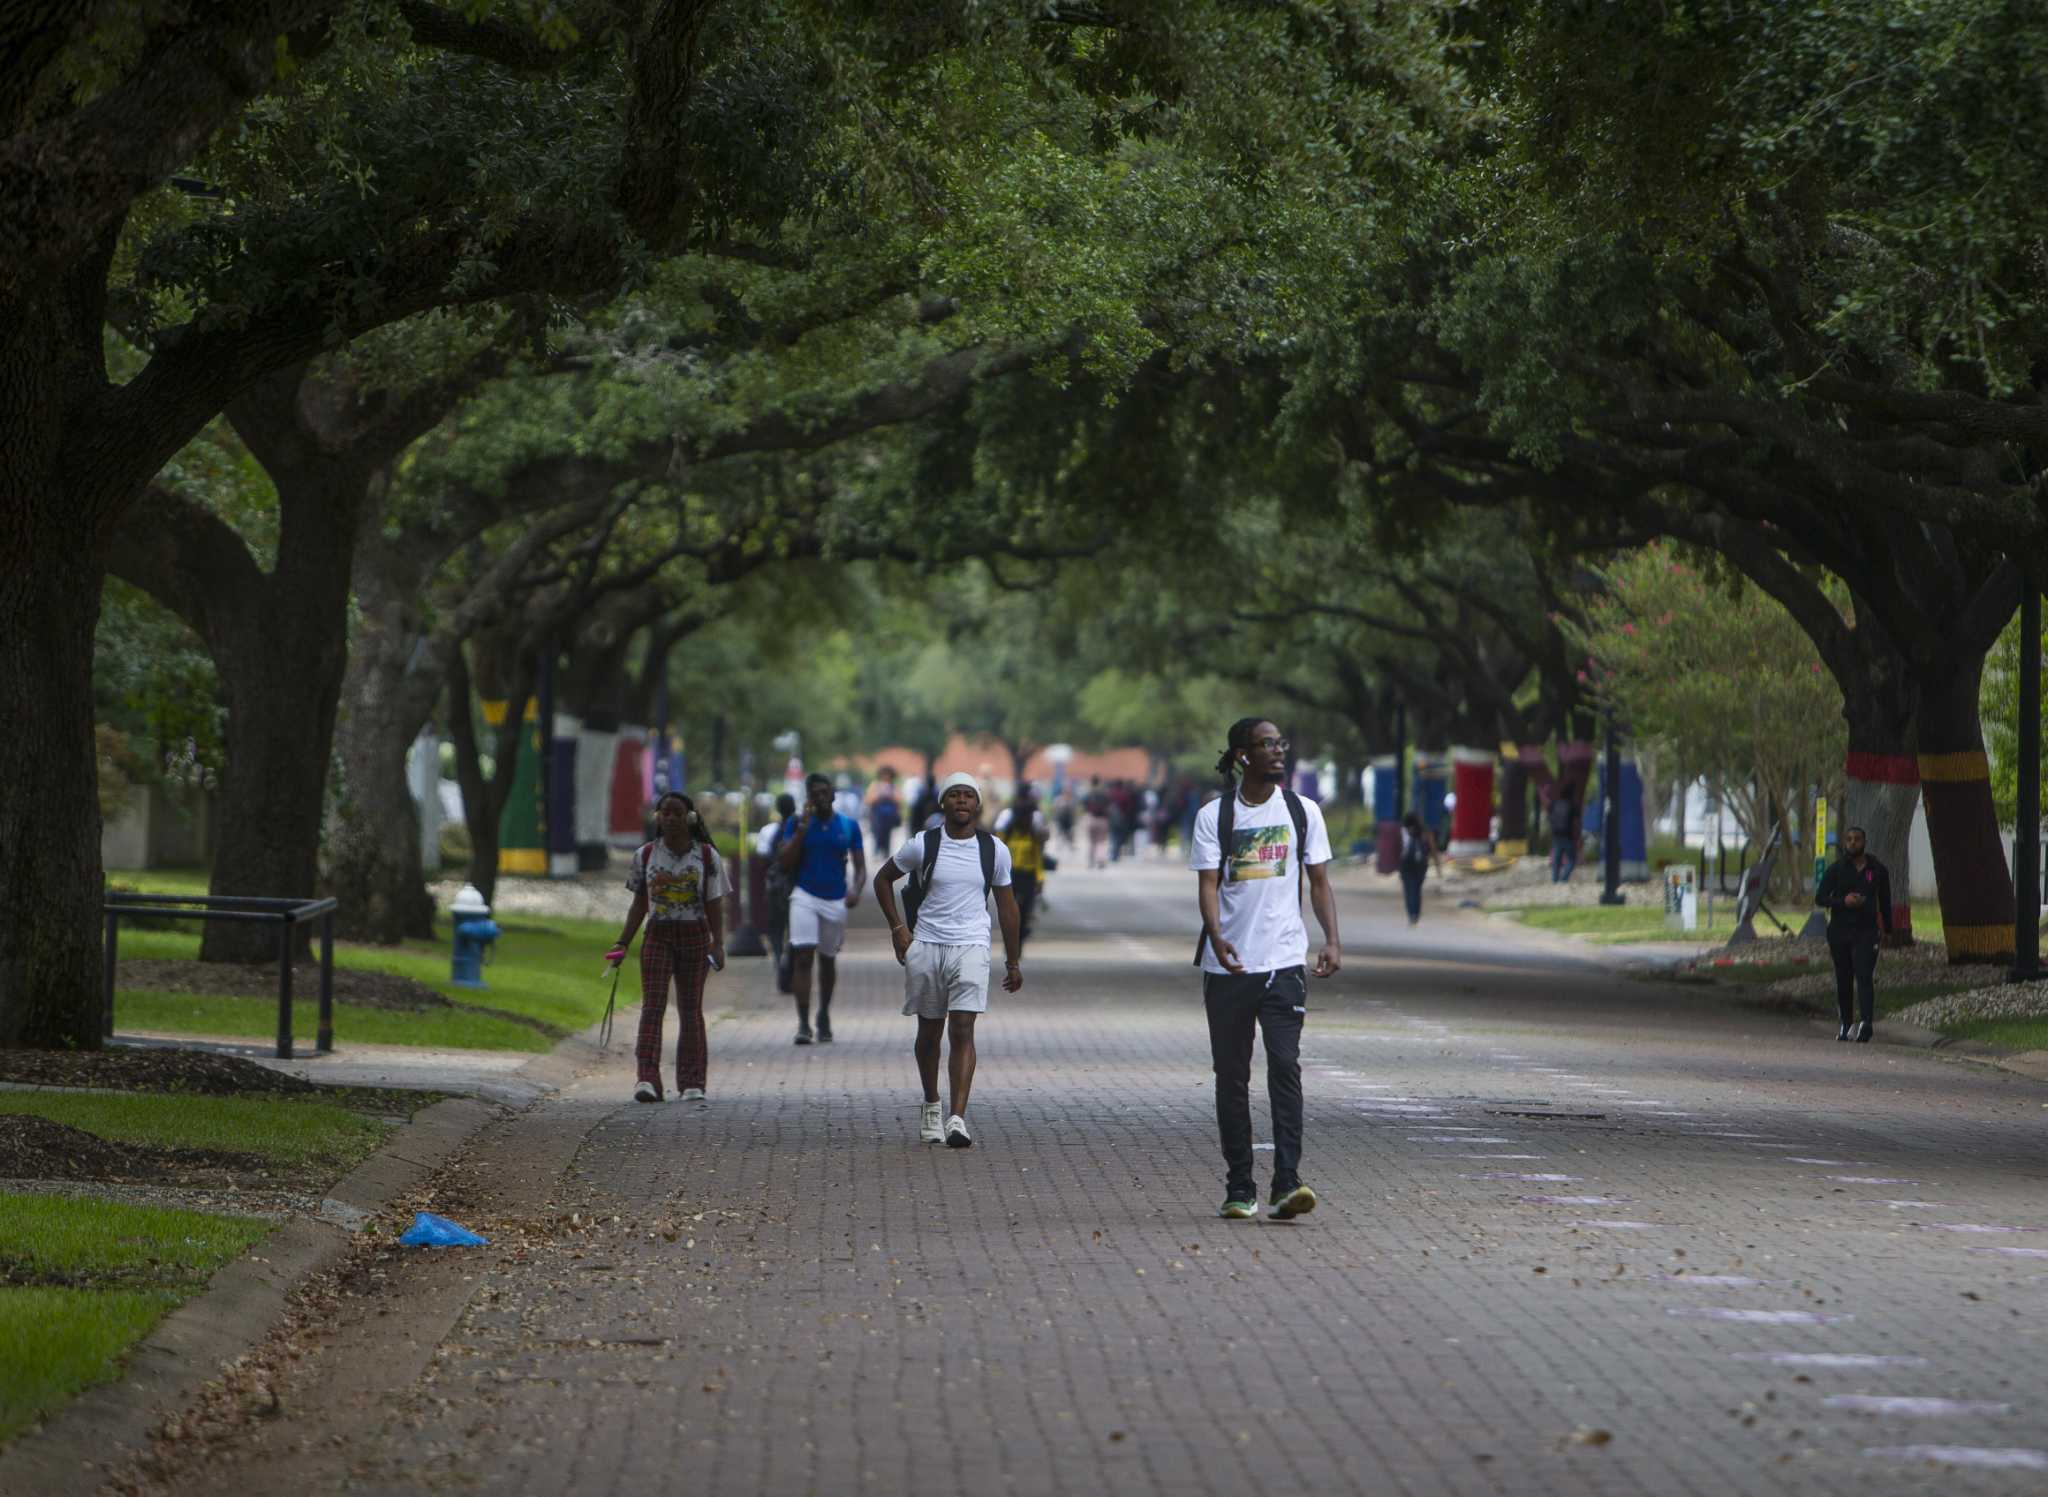 Texas Southern University's board of regents will discuss increasing GPA requirements and waiving test scores in a special board meeting Monday.